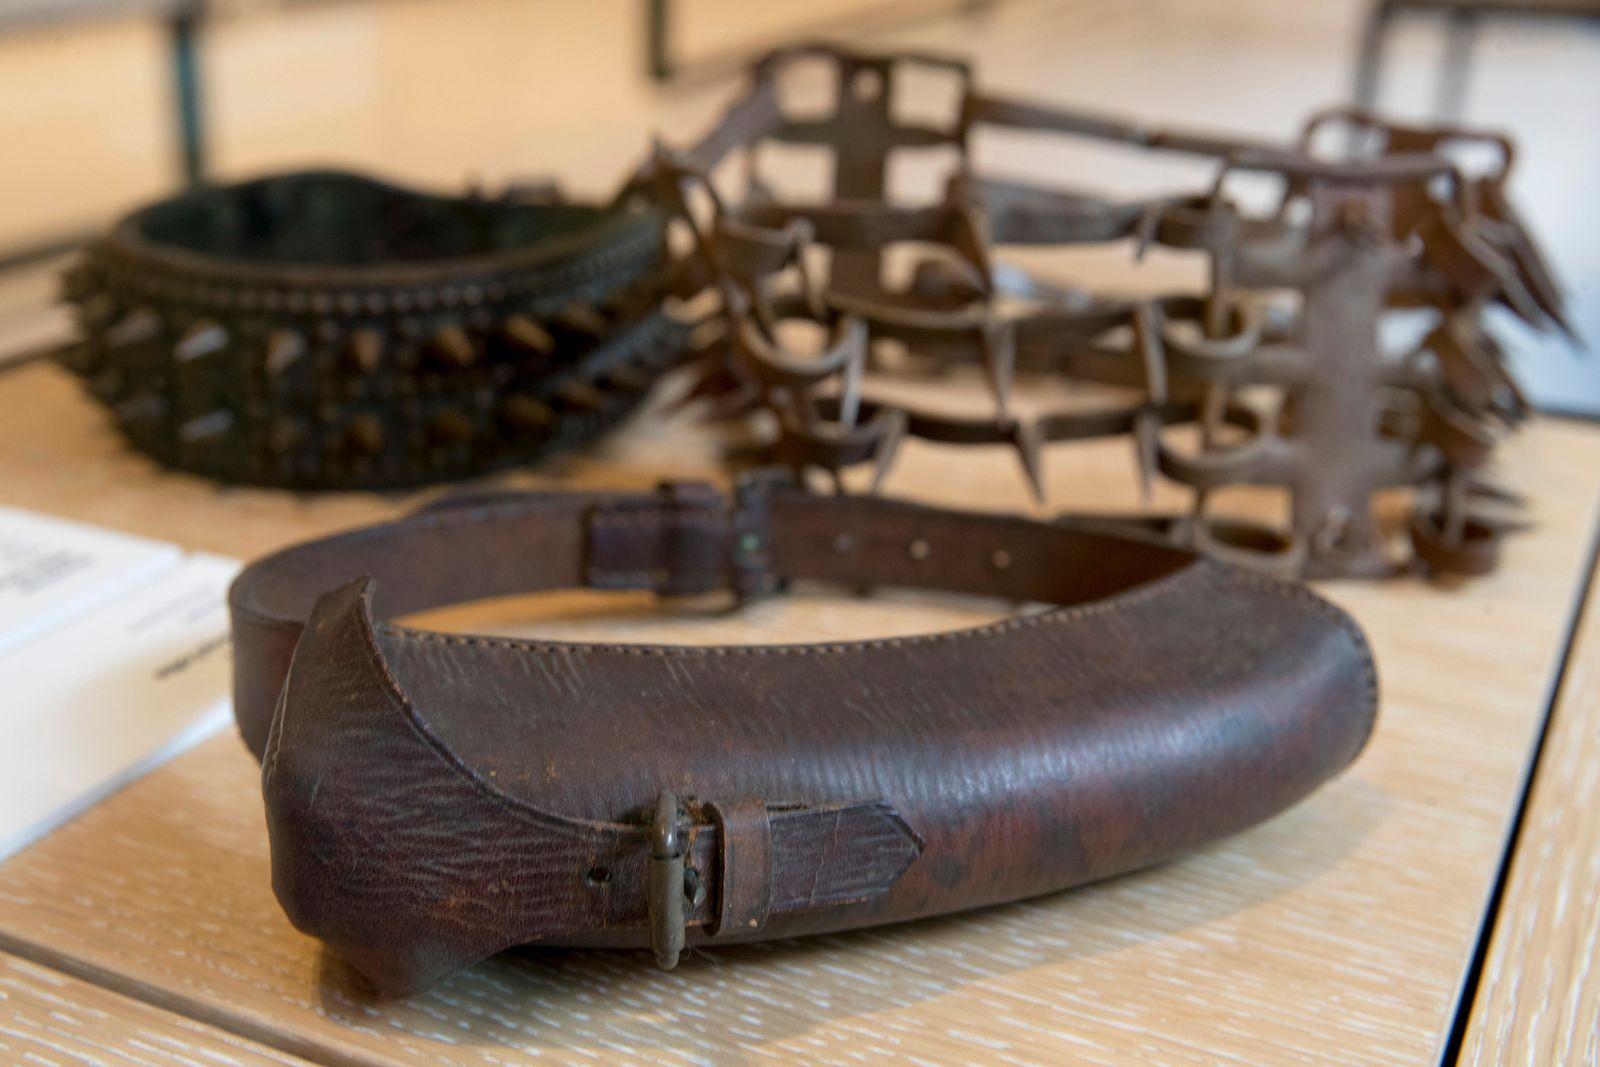 This Wednesday, Jan. 9, 2019, photo shows an American WWII messenger collar, foreground, on display next to other spike collars at the American Kennel Club Museum of the Dog in New York. The museum opens Feb. 8. (AP Photo/Mary Altaffer)